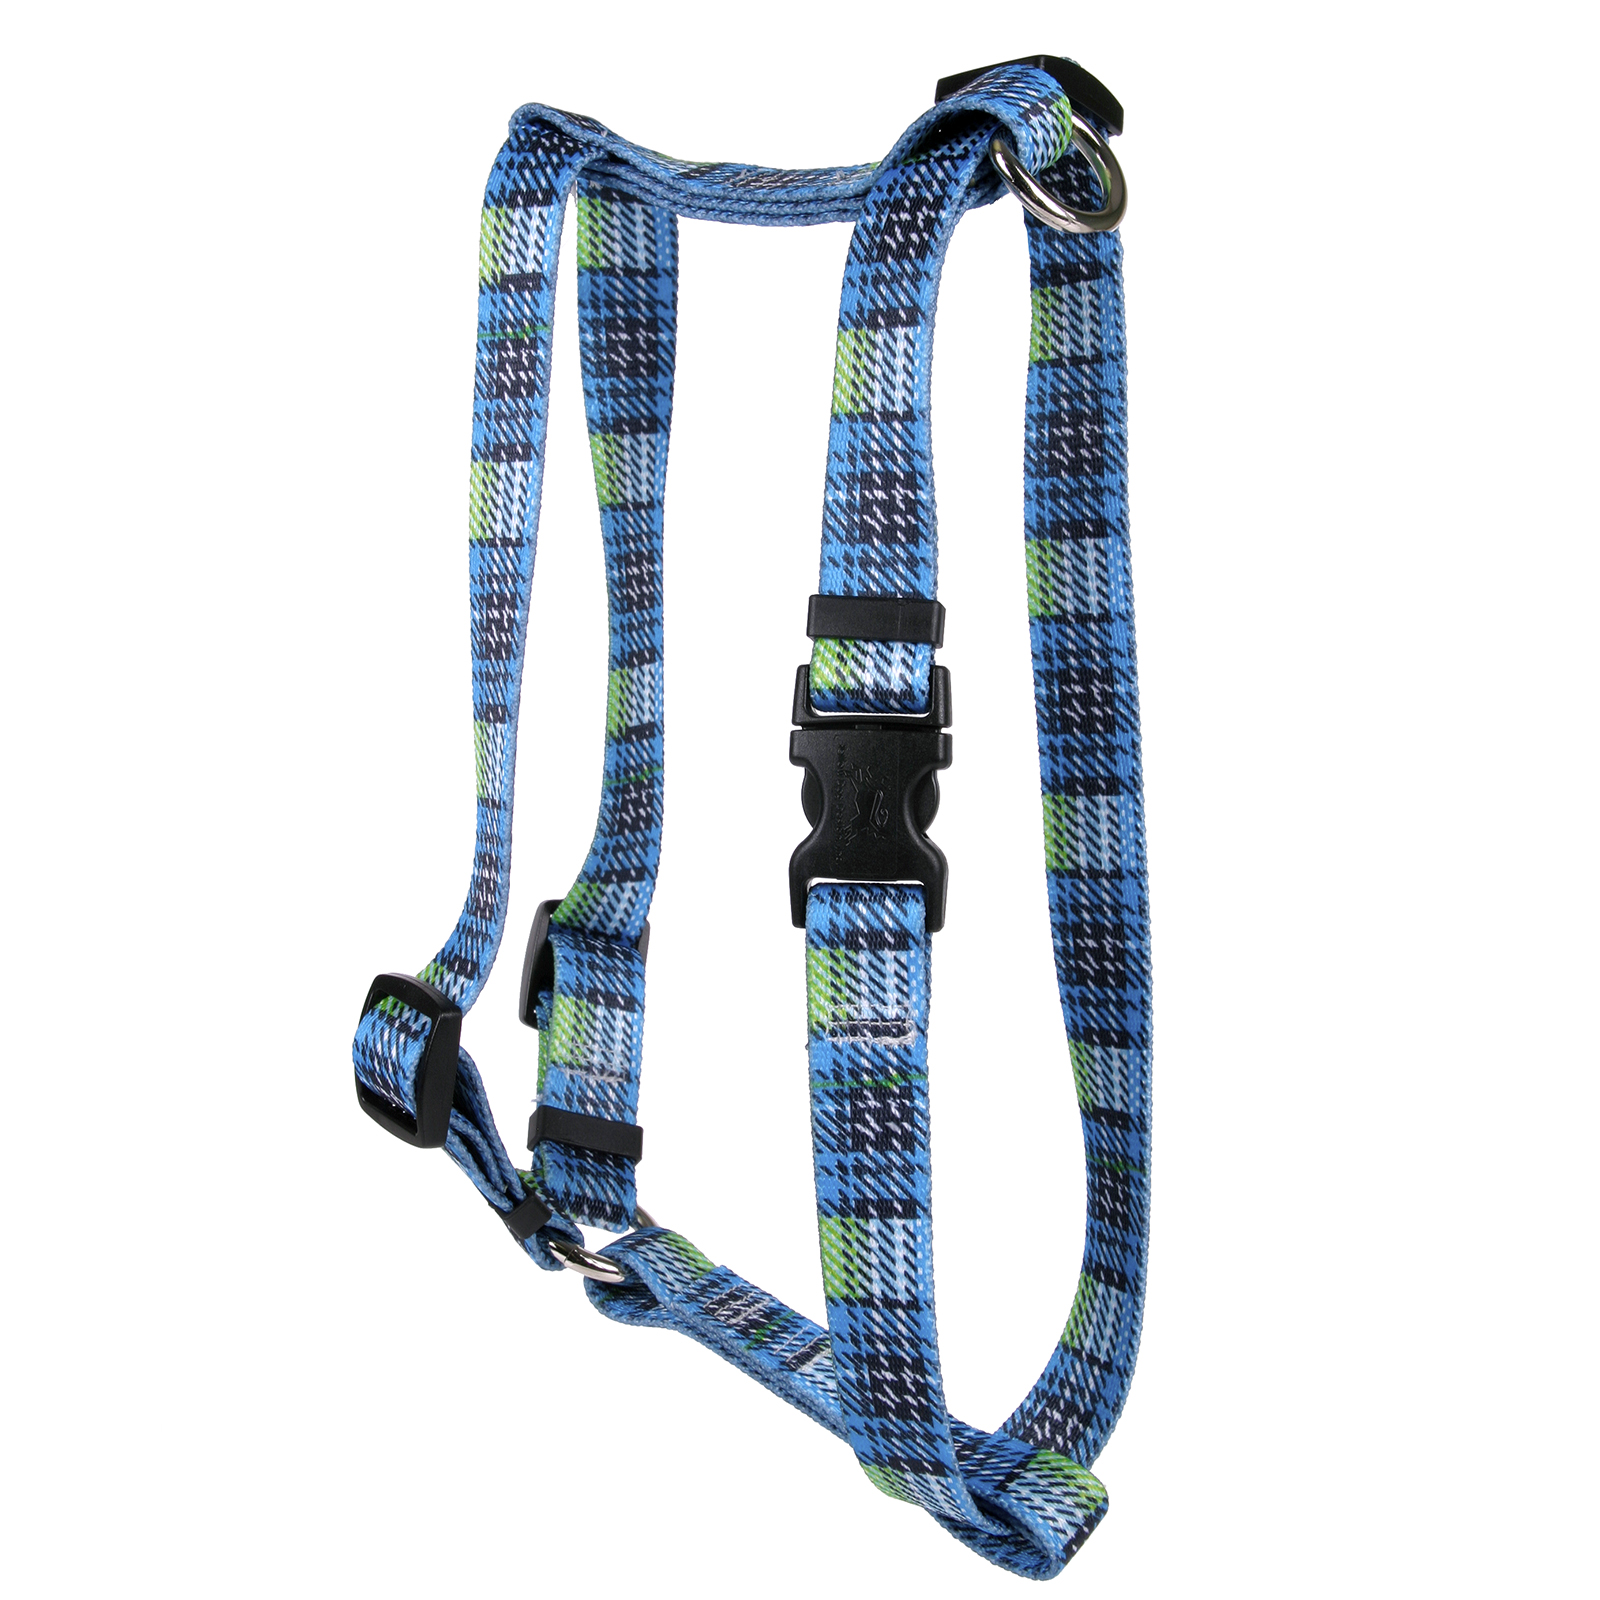 Highland Plaid Blue and Black Roman H Harness